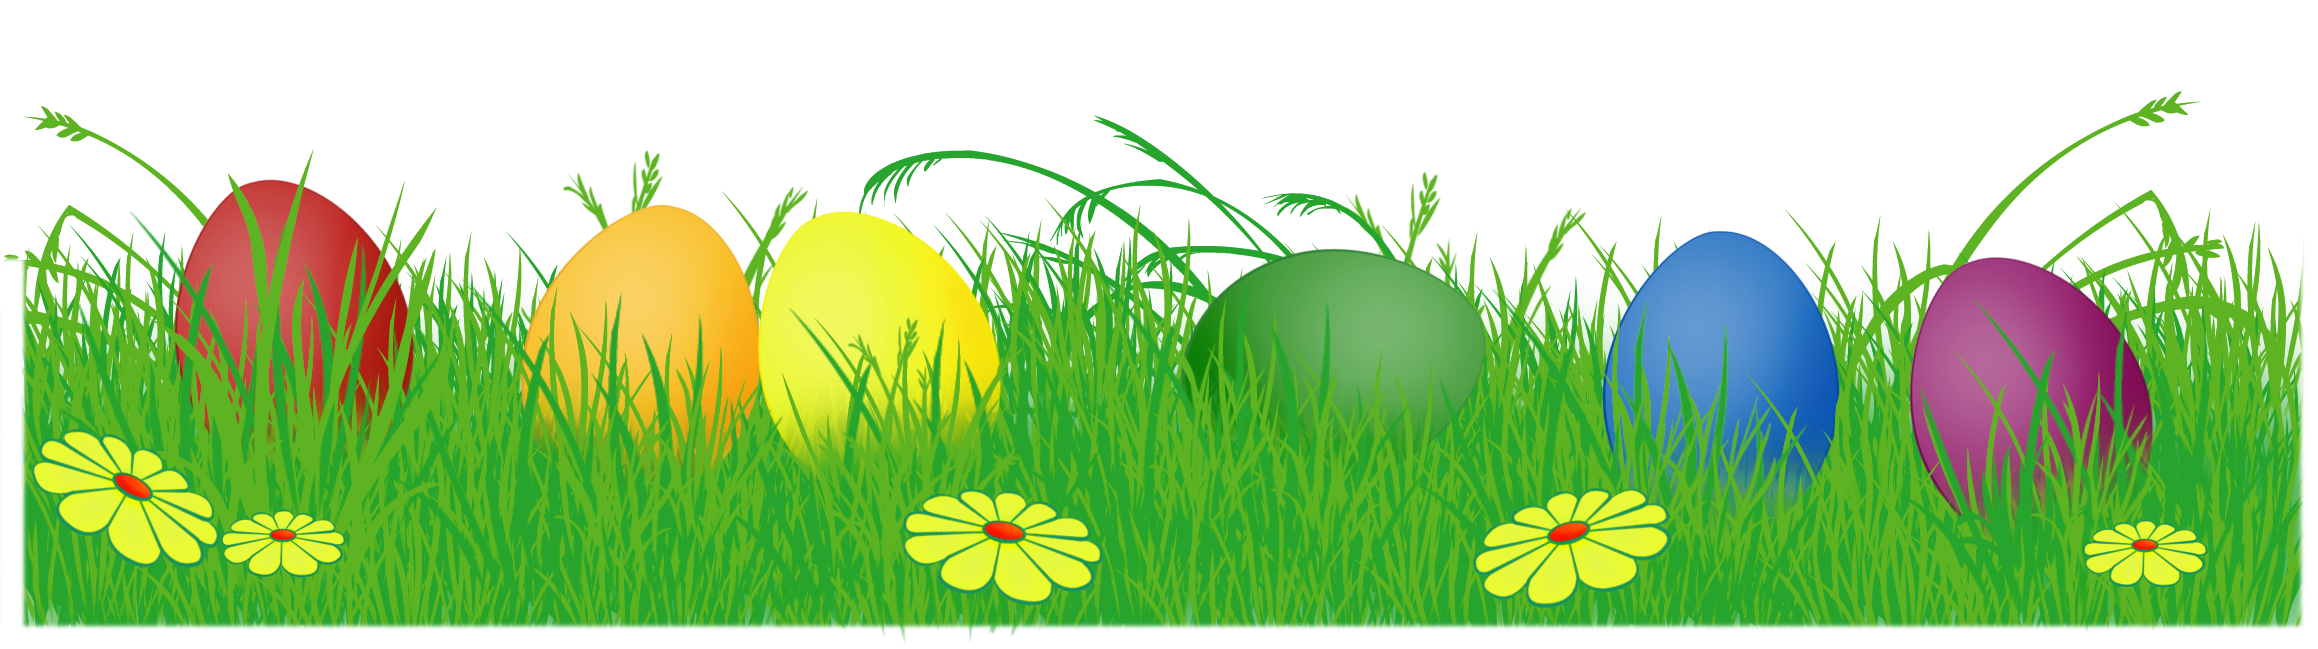 Easter eggs in . Gate clipart grass